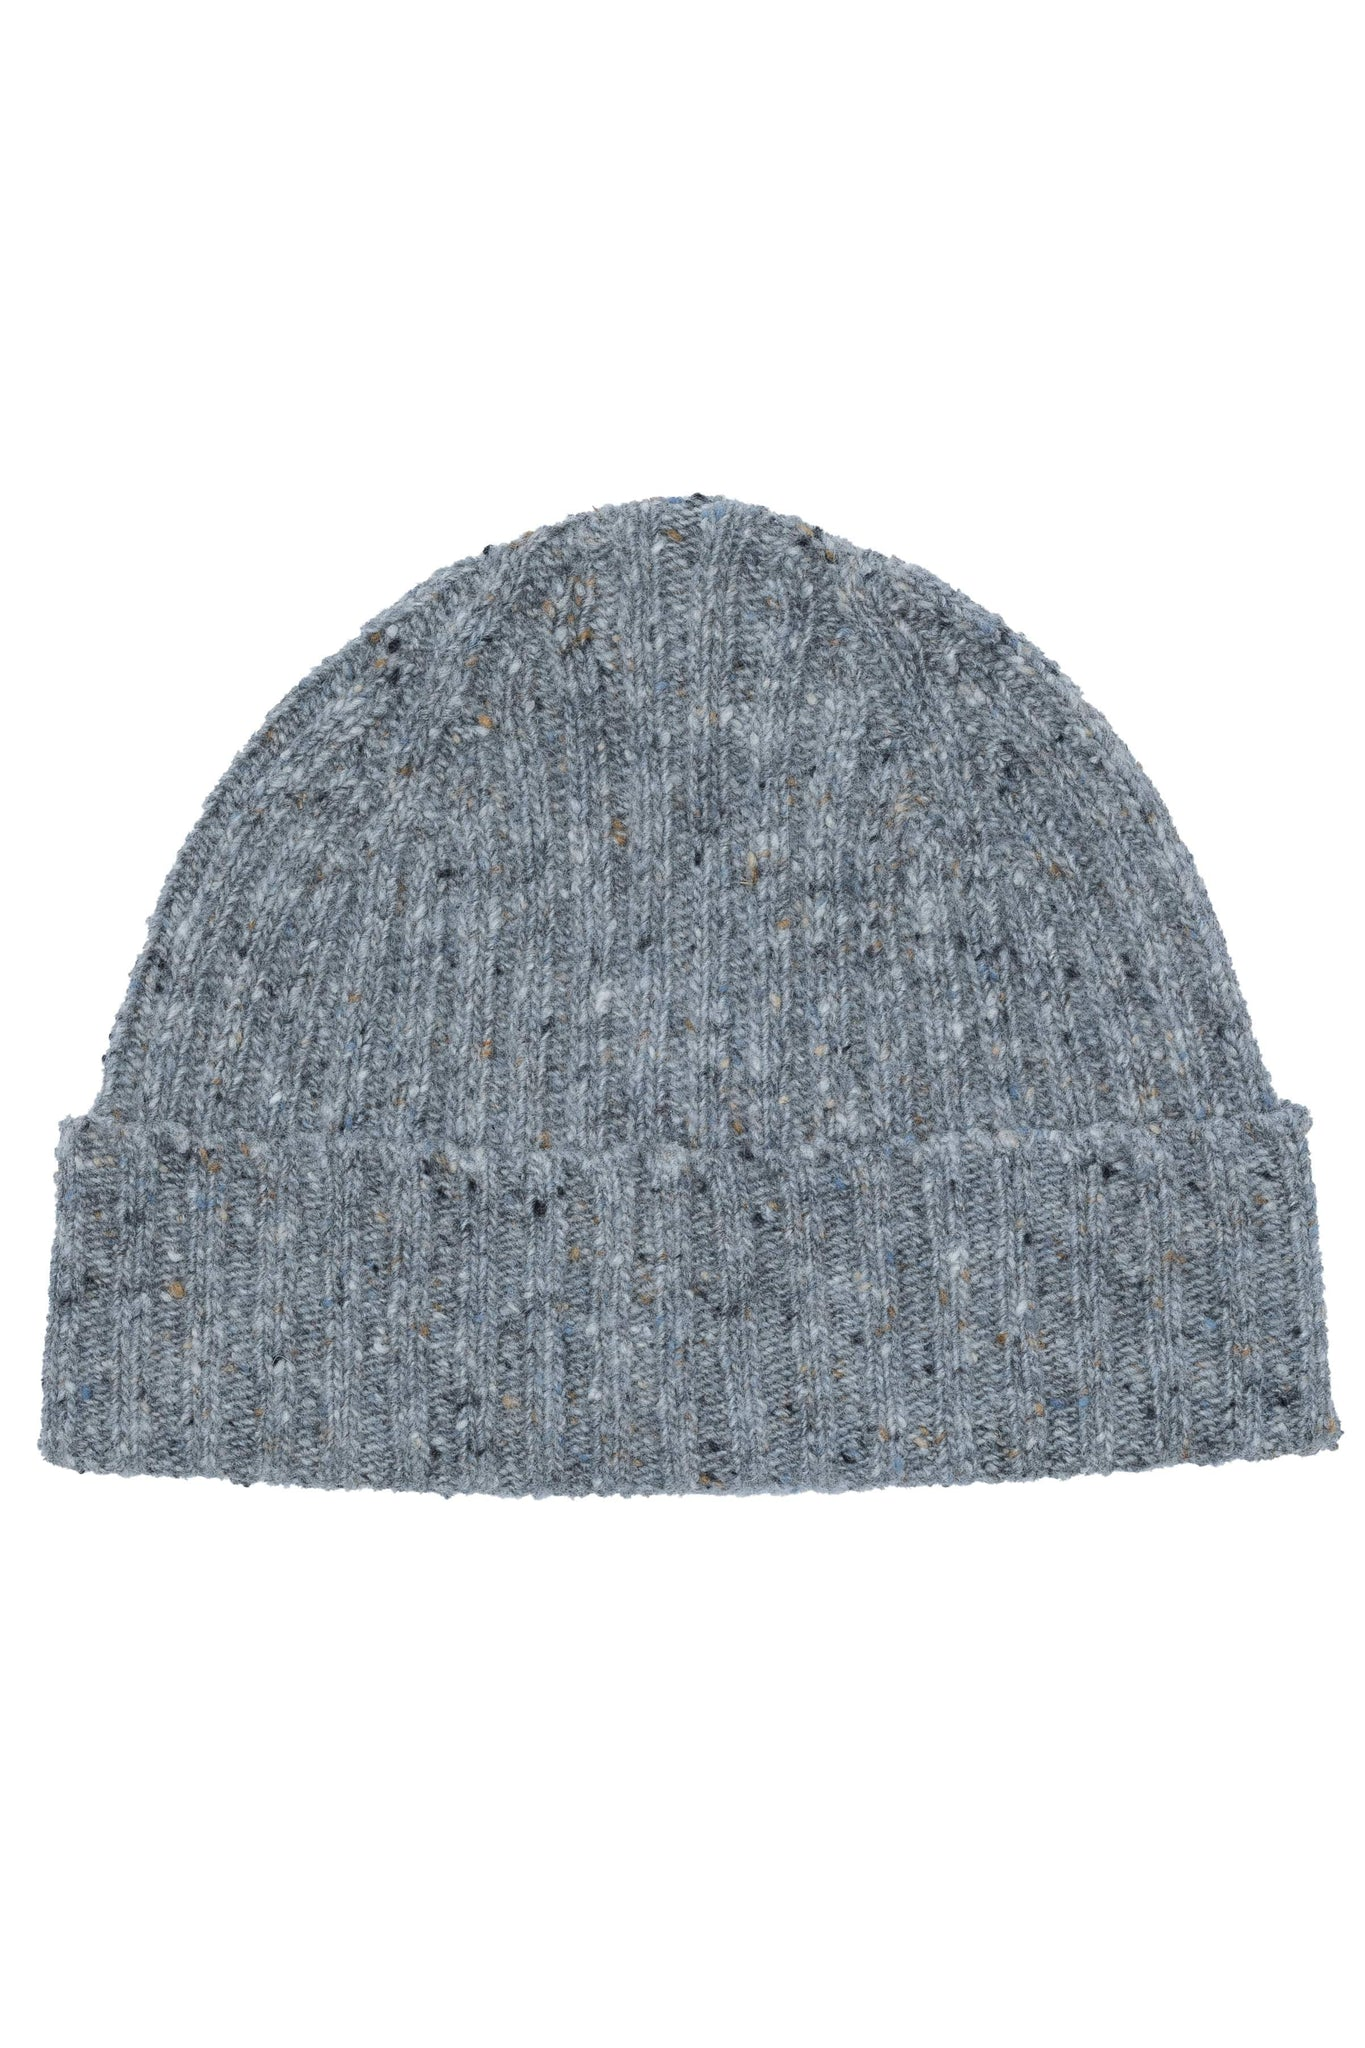 An ivy Huer Light Grey Donegal Beanie